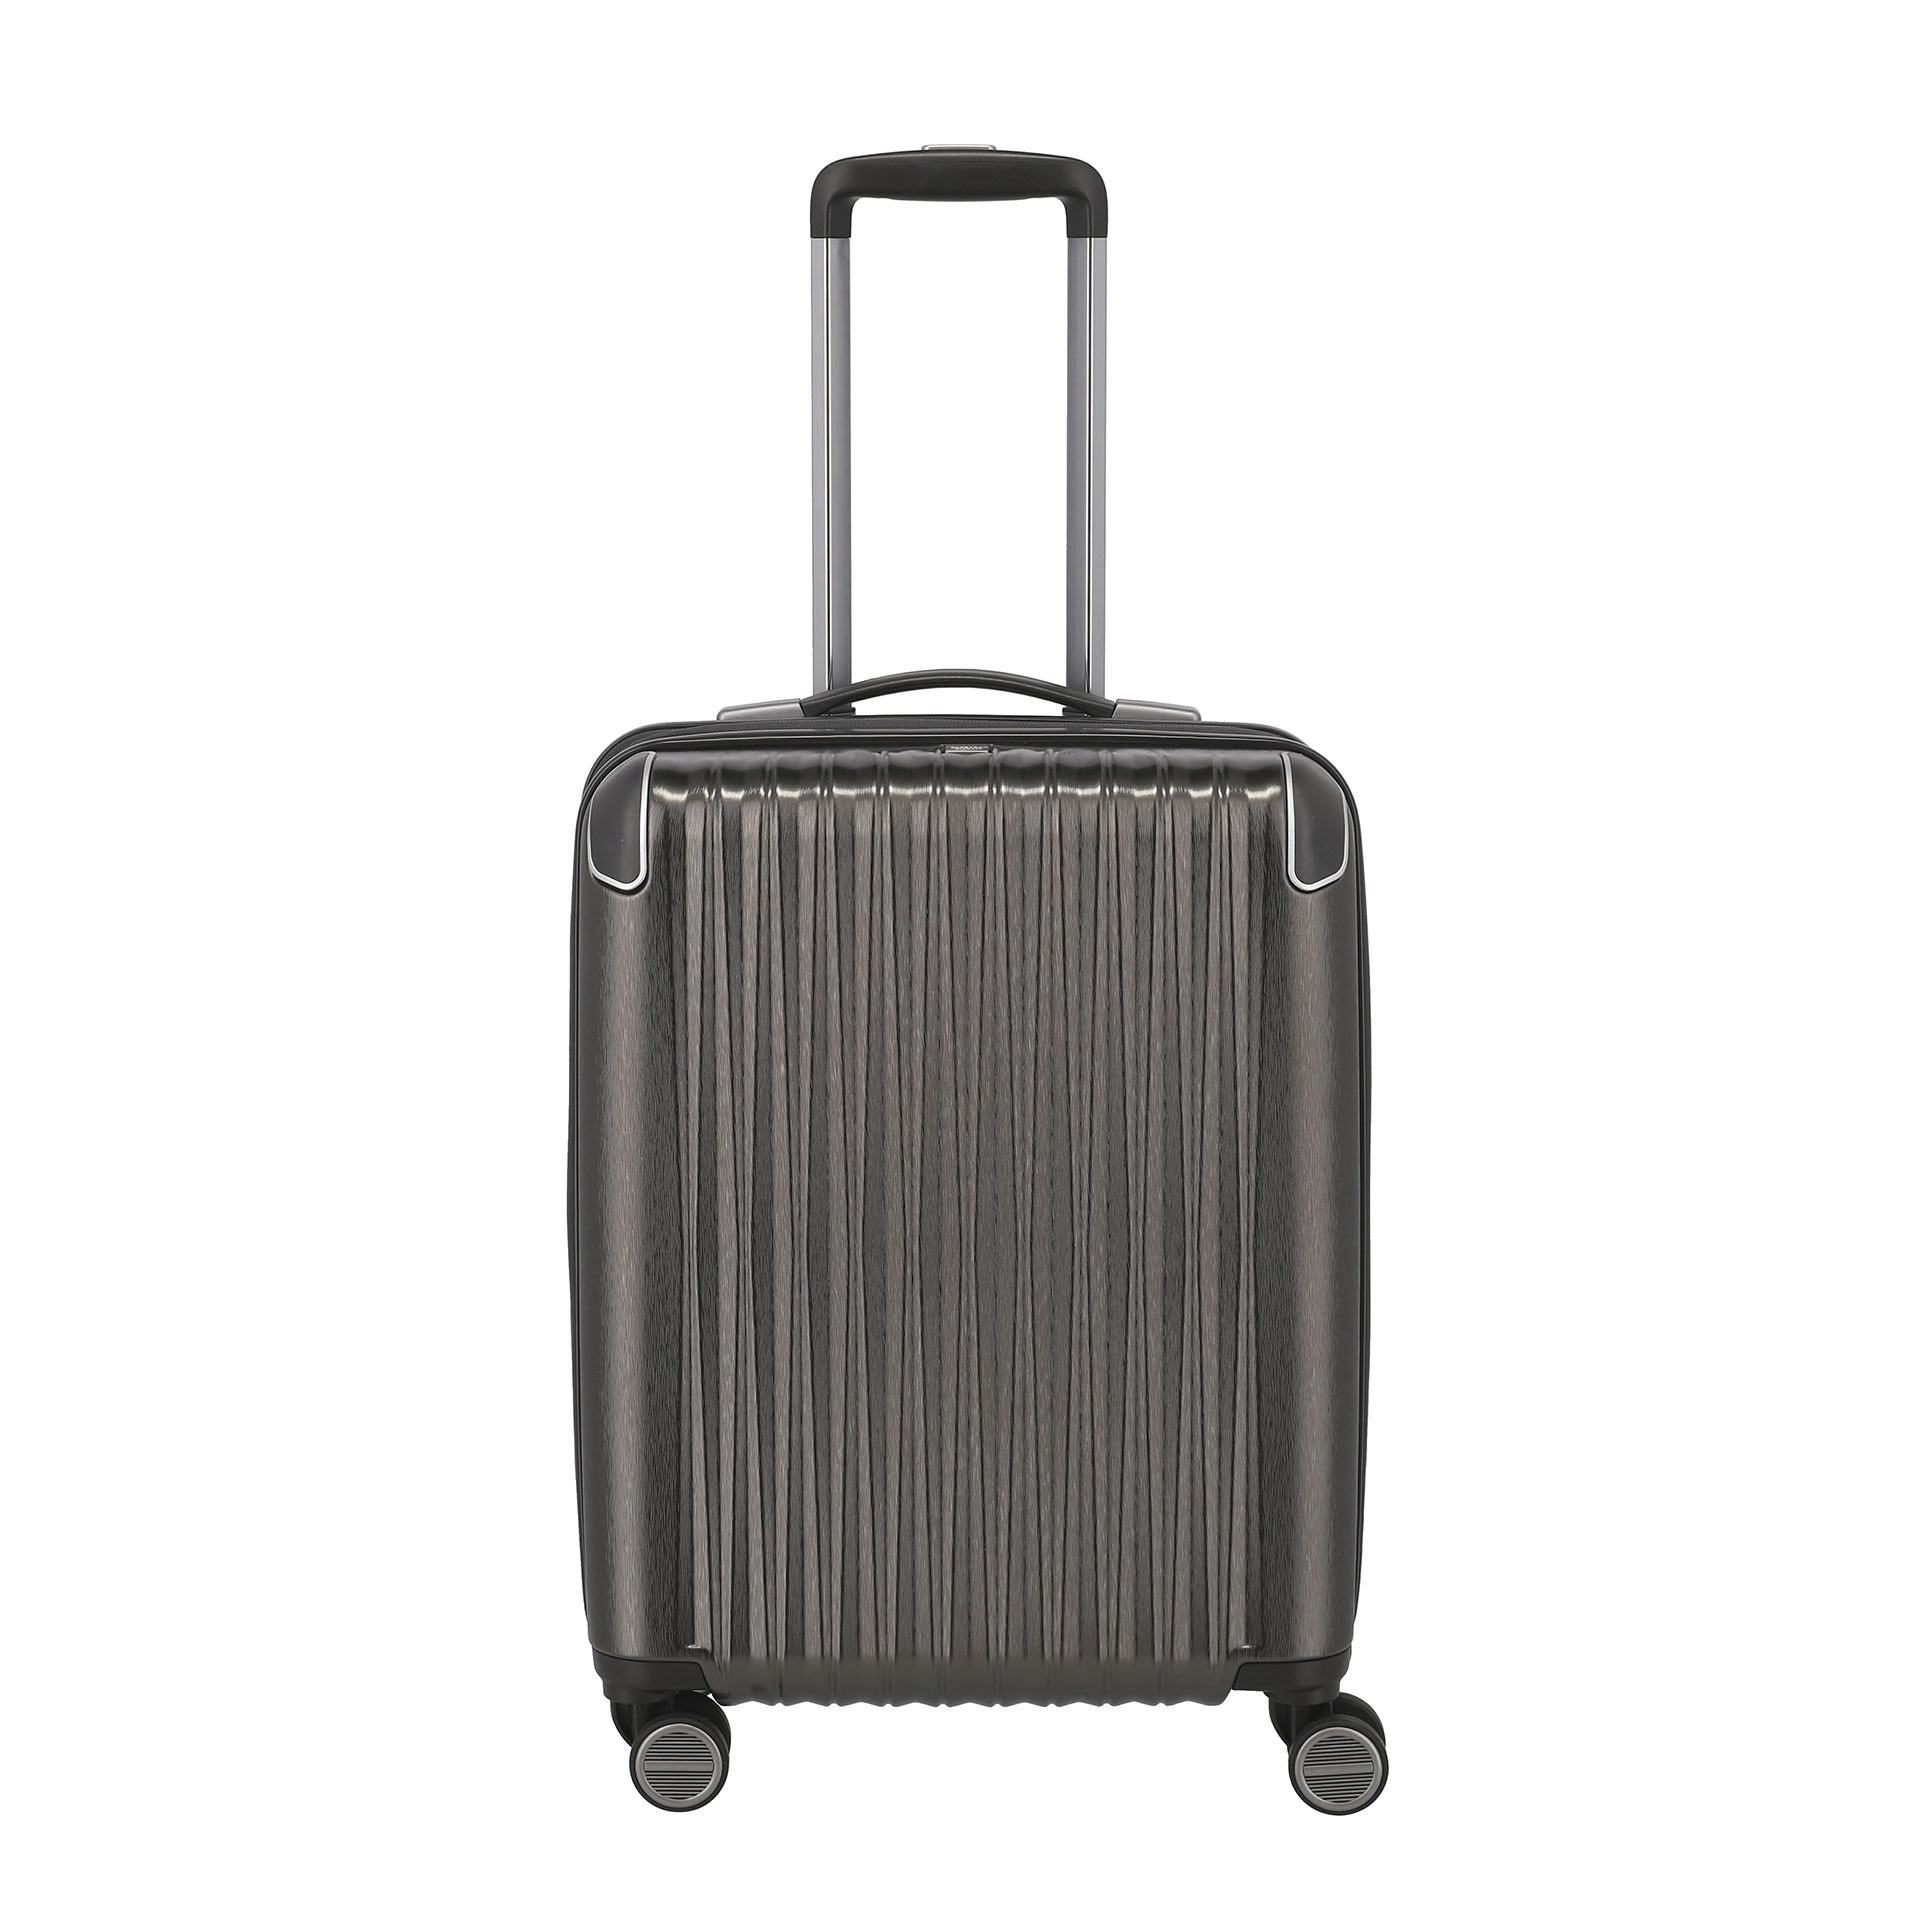 Barbara Glint 4-Rad Trolley S erweiterbar anthracitemetallic